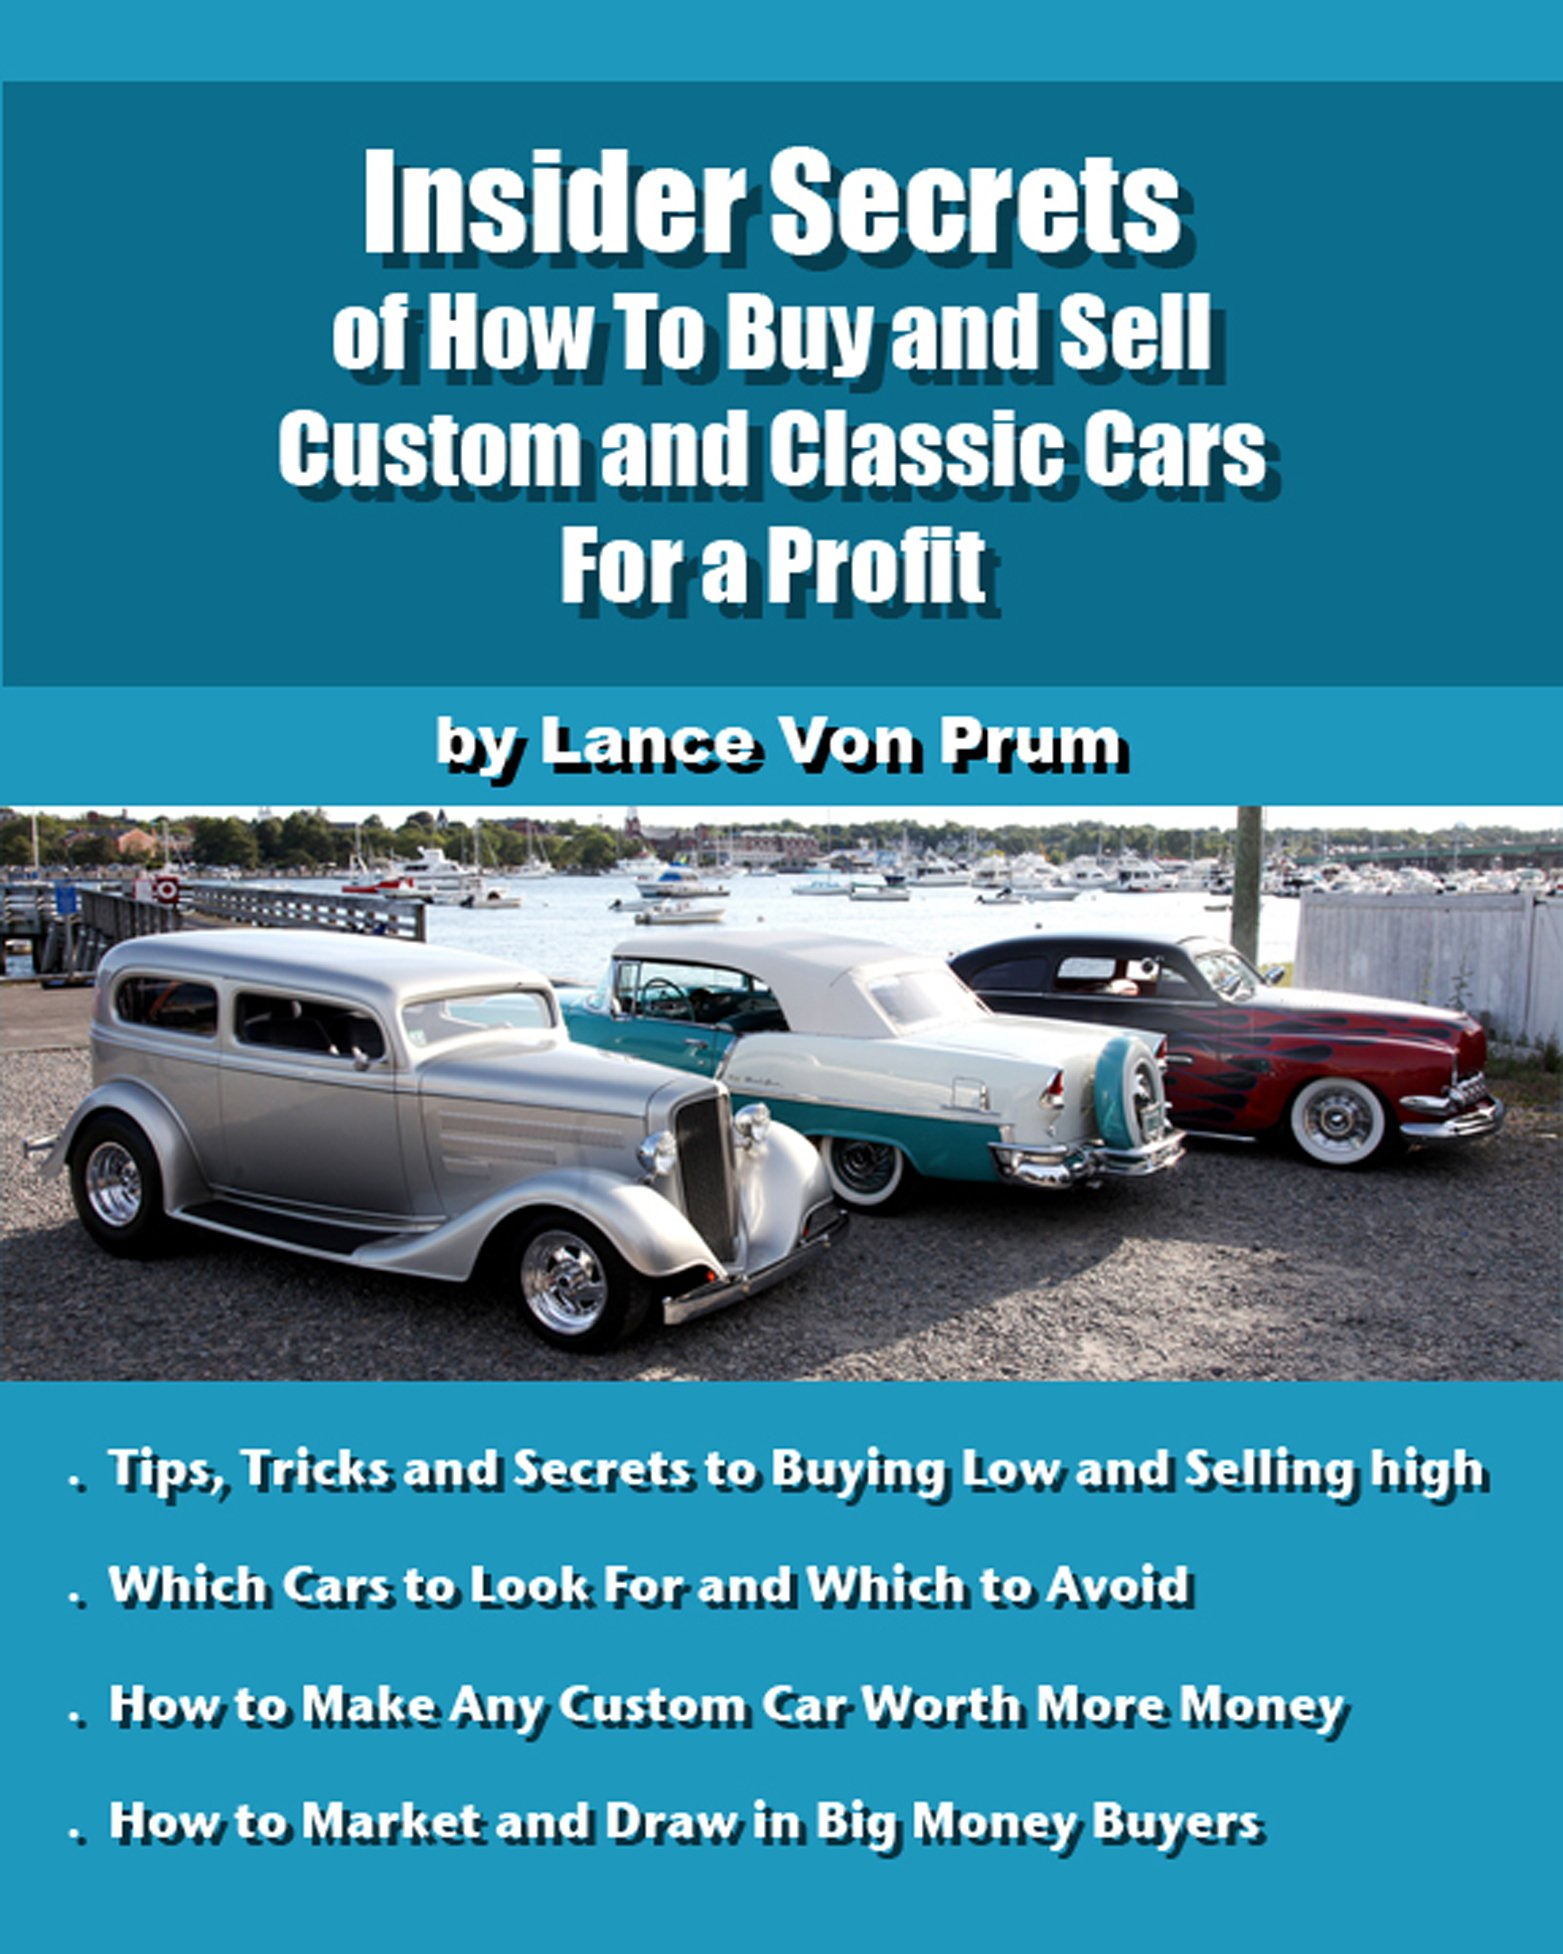 quotations · insider secrets of how to sell custom and classic cars for profit tips tricks